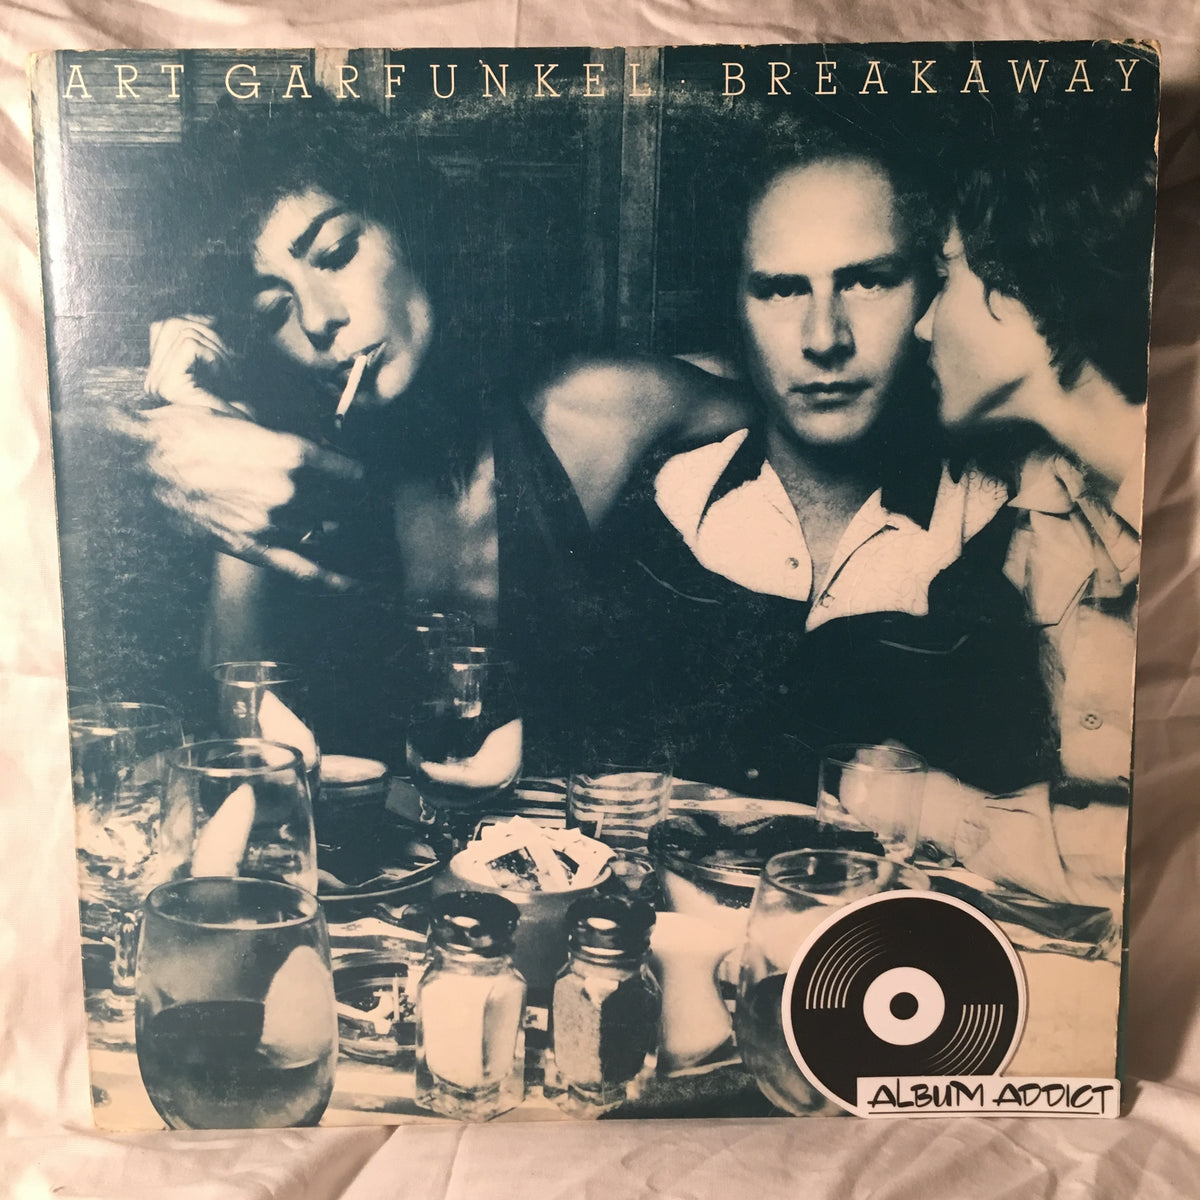 "99 Miles From La Art Garfunkel art garfunkel: ""breakaway"""